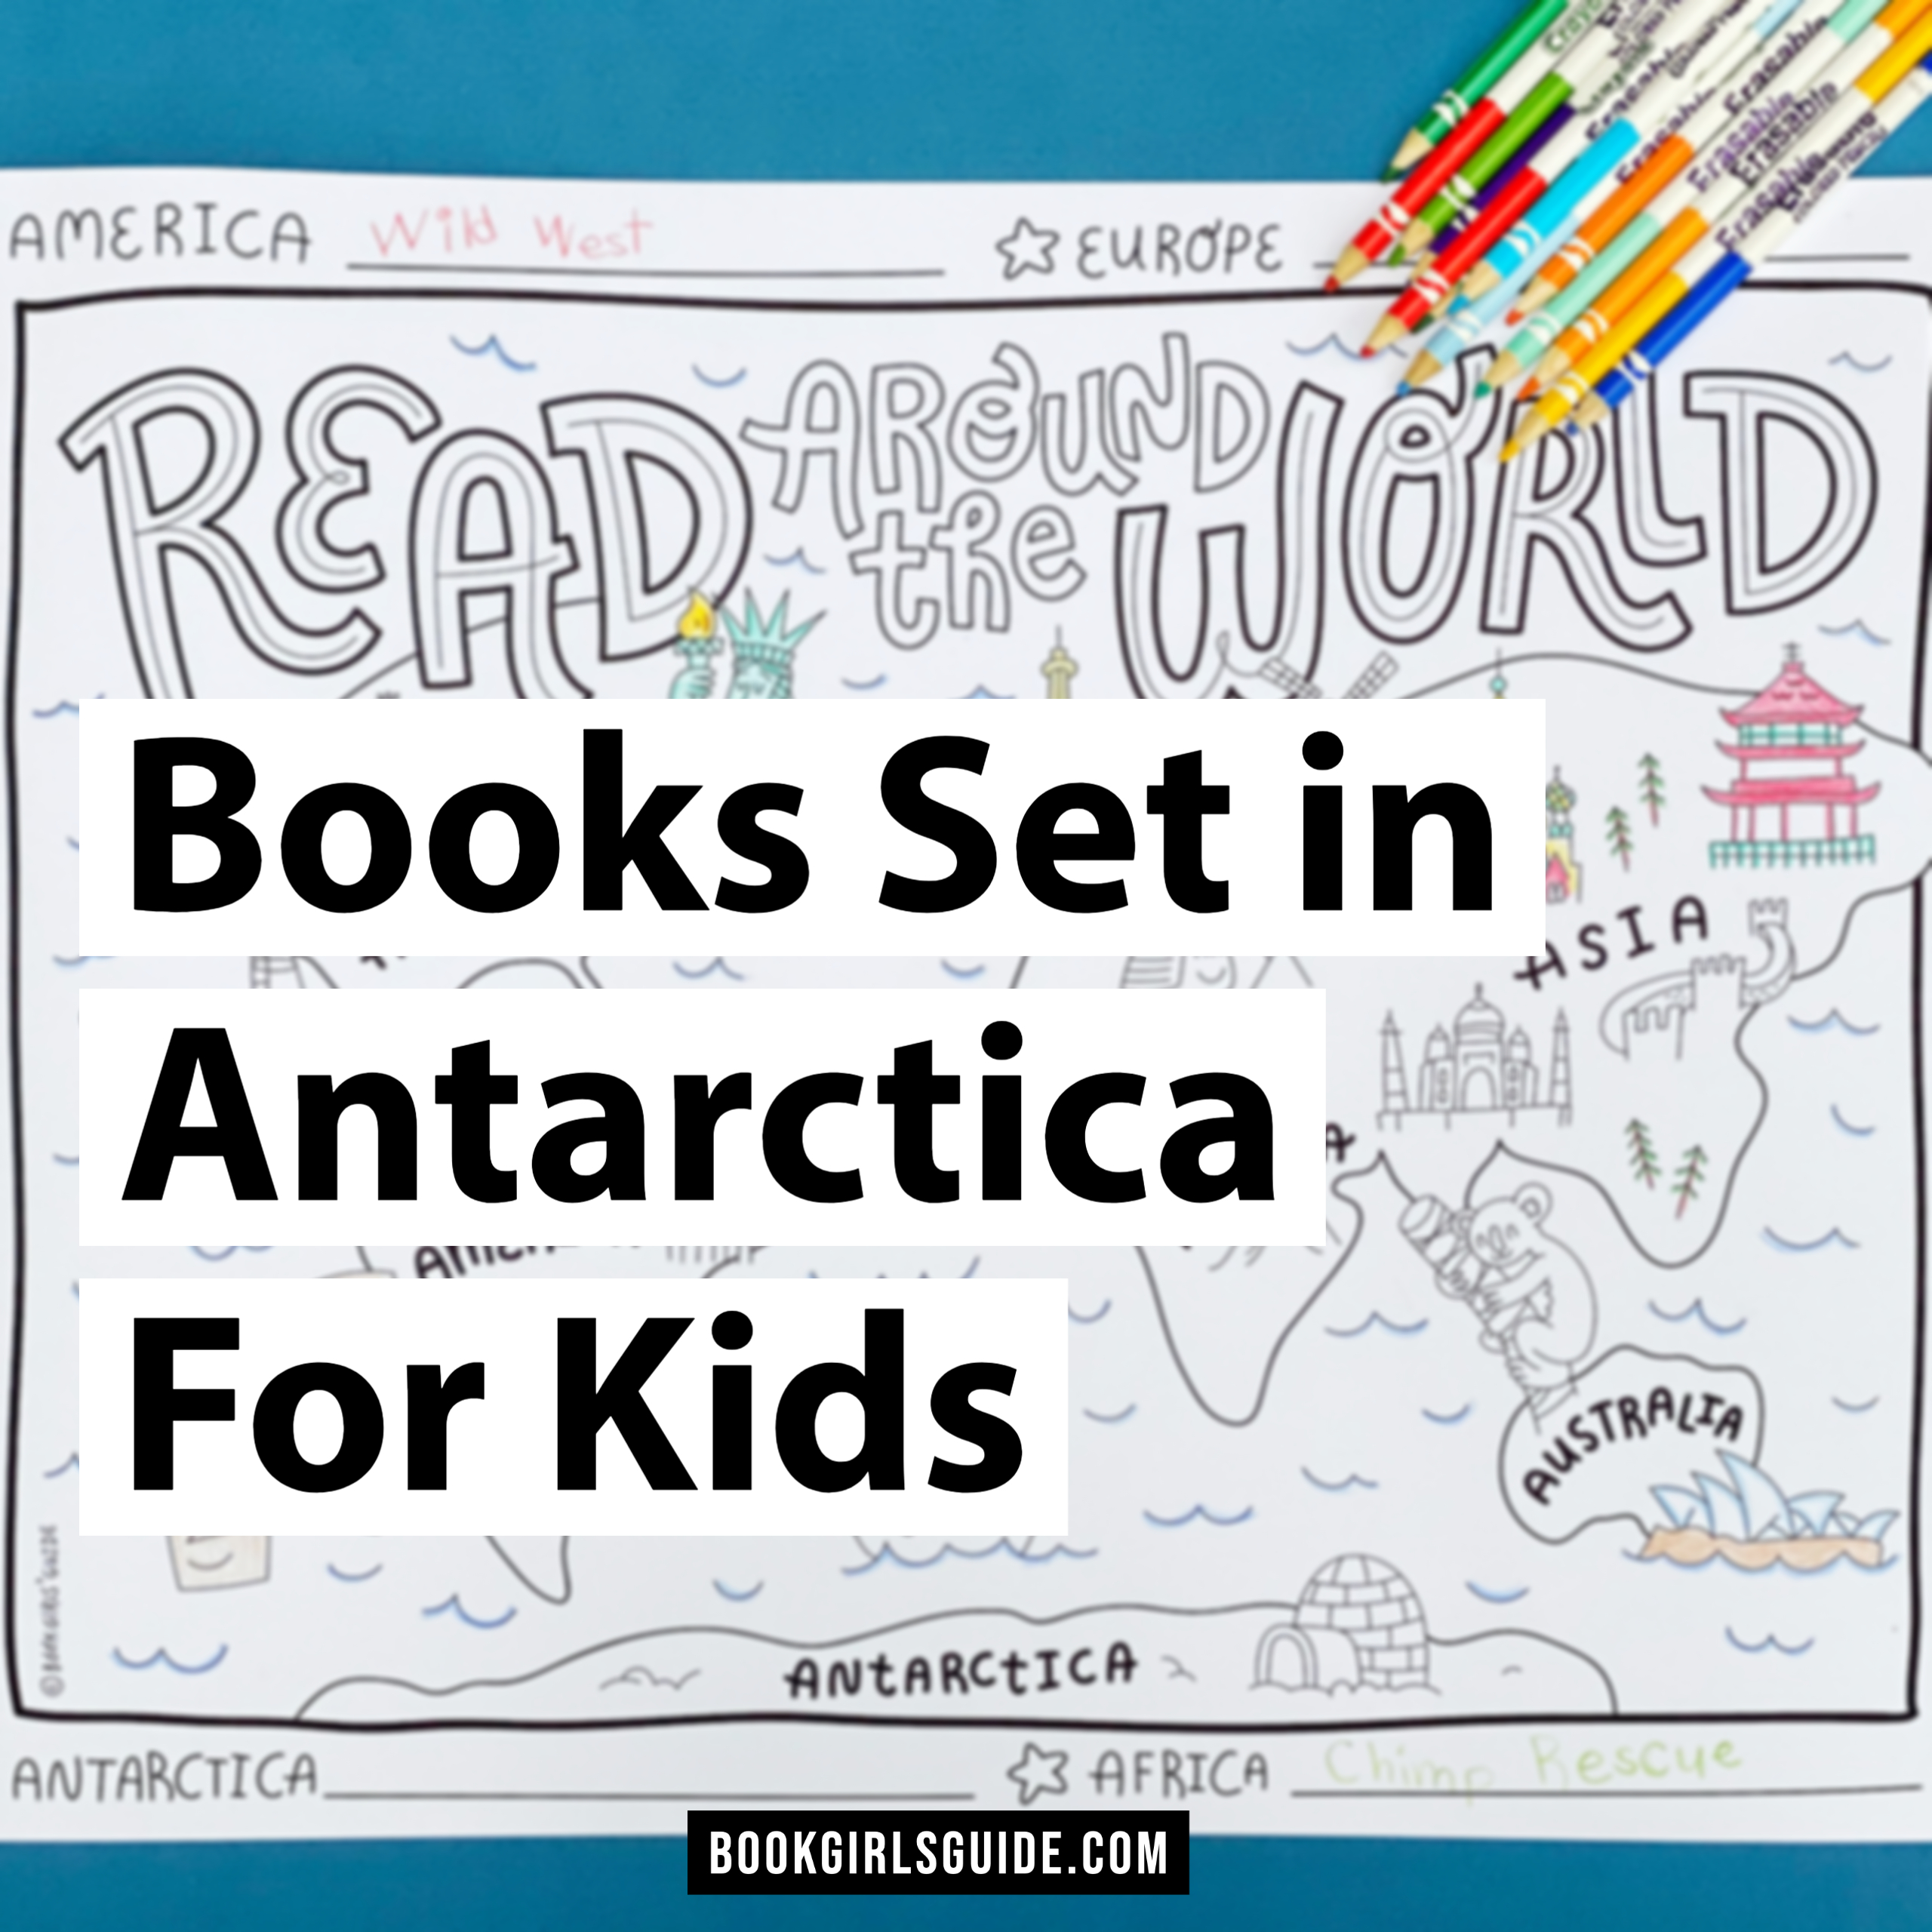 Books Set in Antarctica for Kids - Text over black and white world map